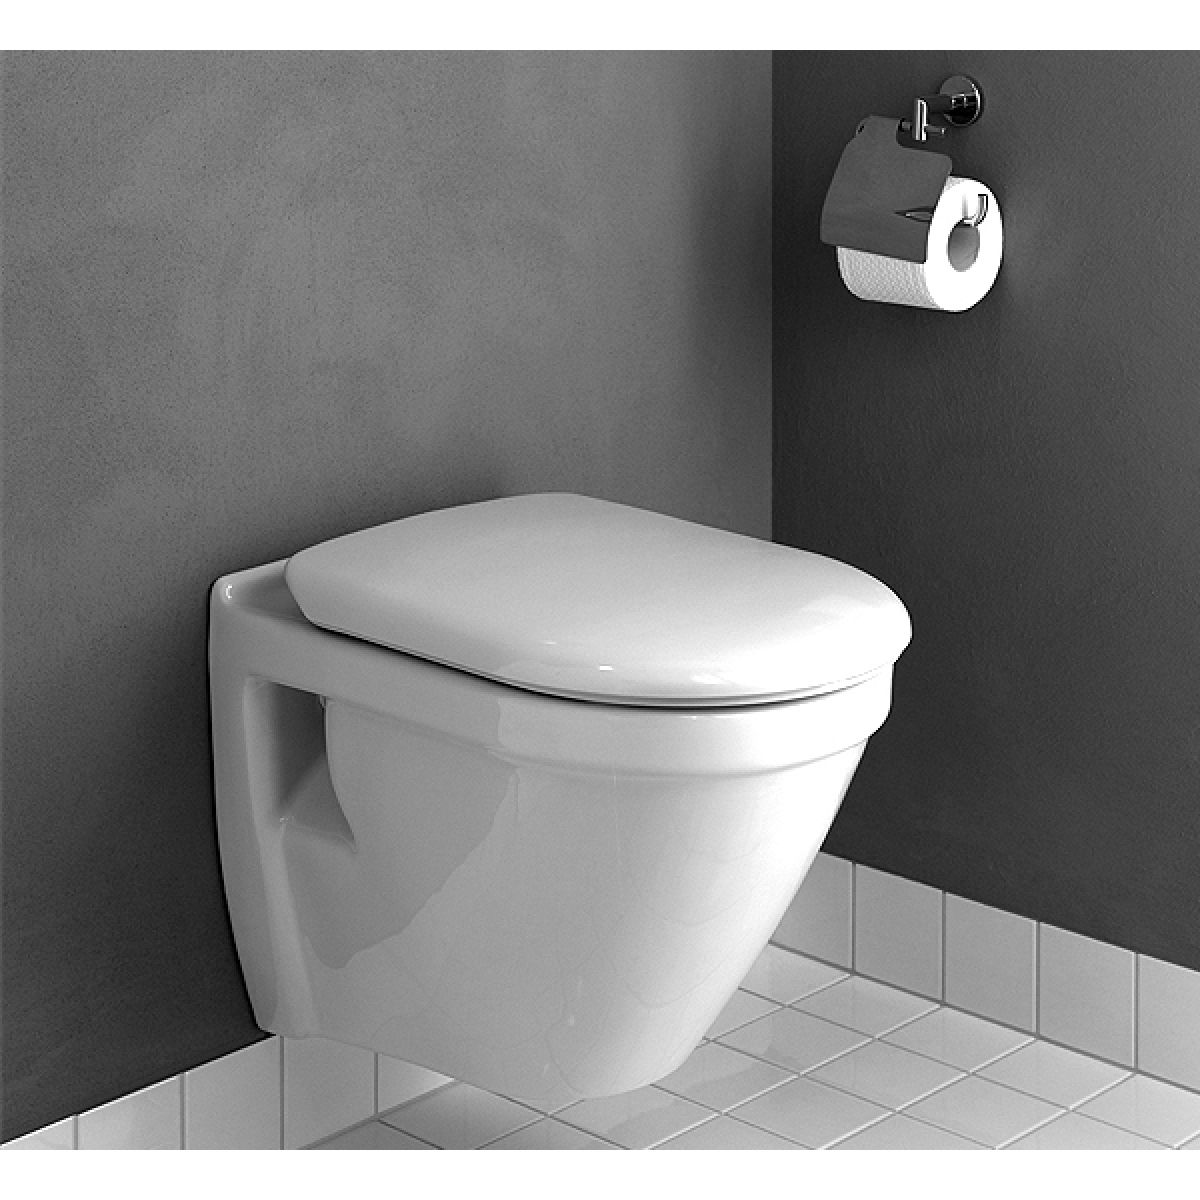 vitra s50 wall hung toilet uk bathrooms. Black Bedroom Furniture Sets. Home Design Ideas